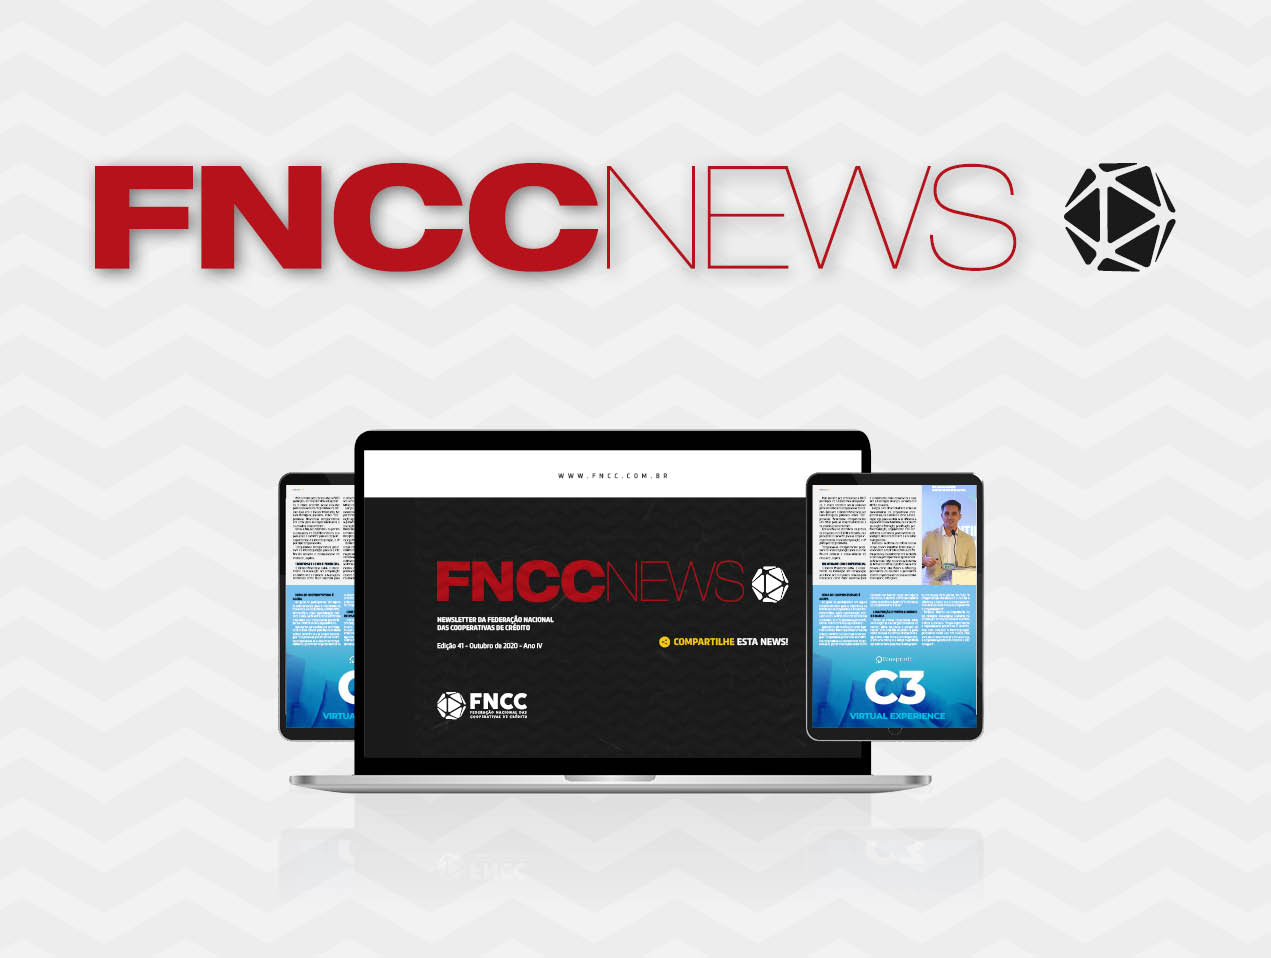 Web Banner   NEWSLETTER FNCC 20